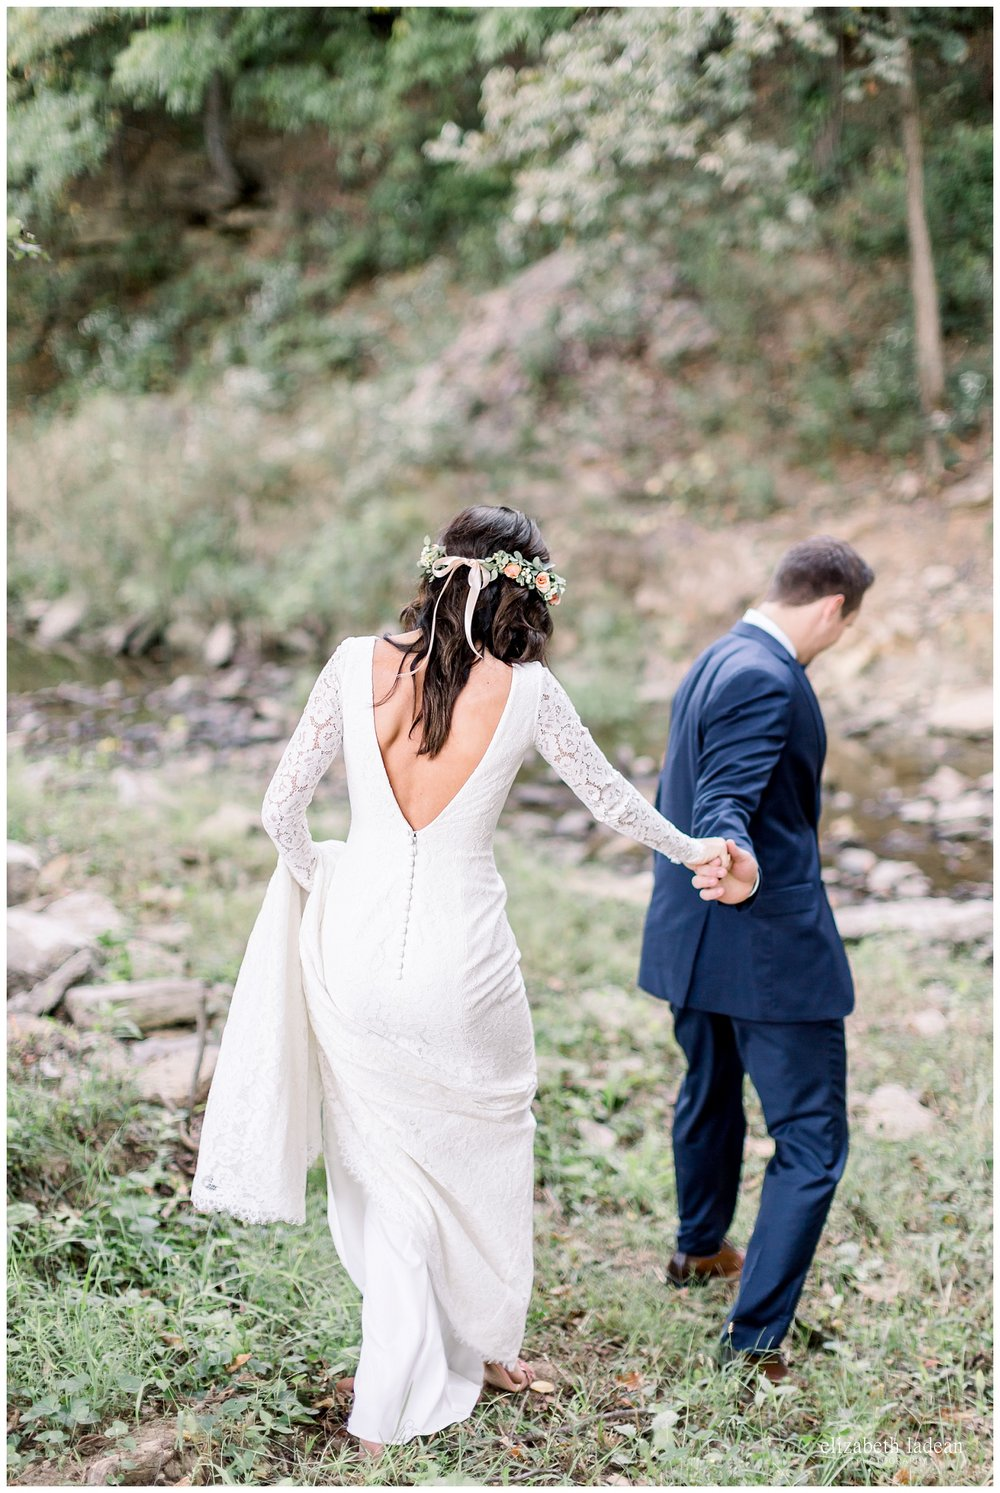 Willow-Creek-Blush-and-Blues-Outdoor-Wedding-Photography-S+Z2018-elizabeth-ladean-photography-photo_0605.jpg